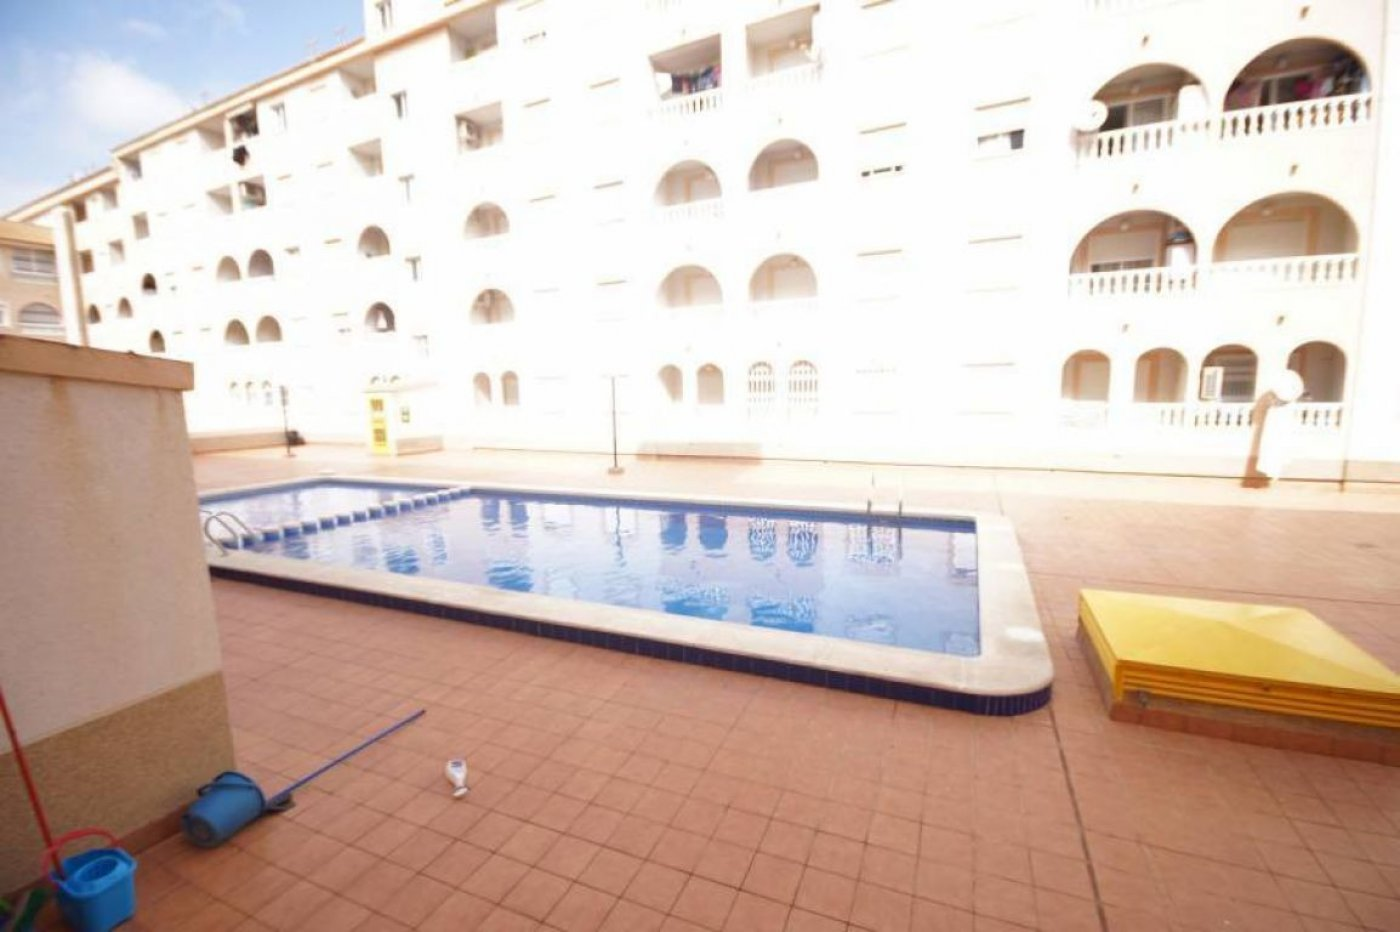 2 Bedrooms Apartment with Swimming Pool just 500 meters from Playa del Cura